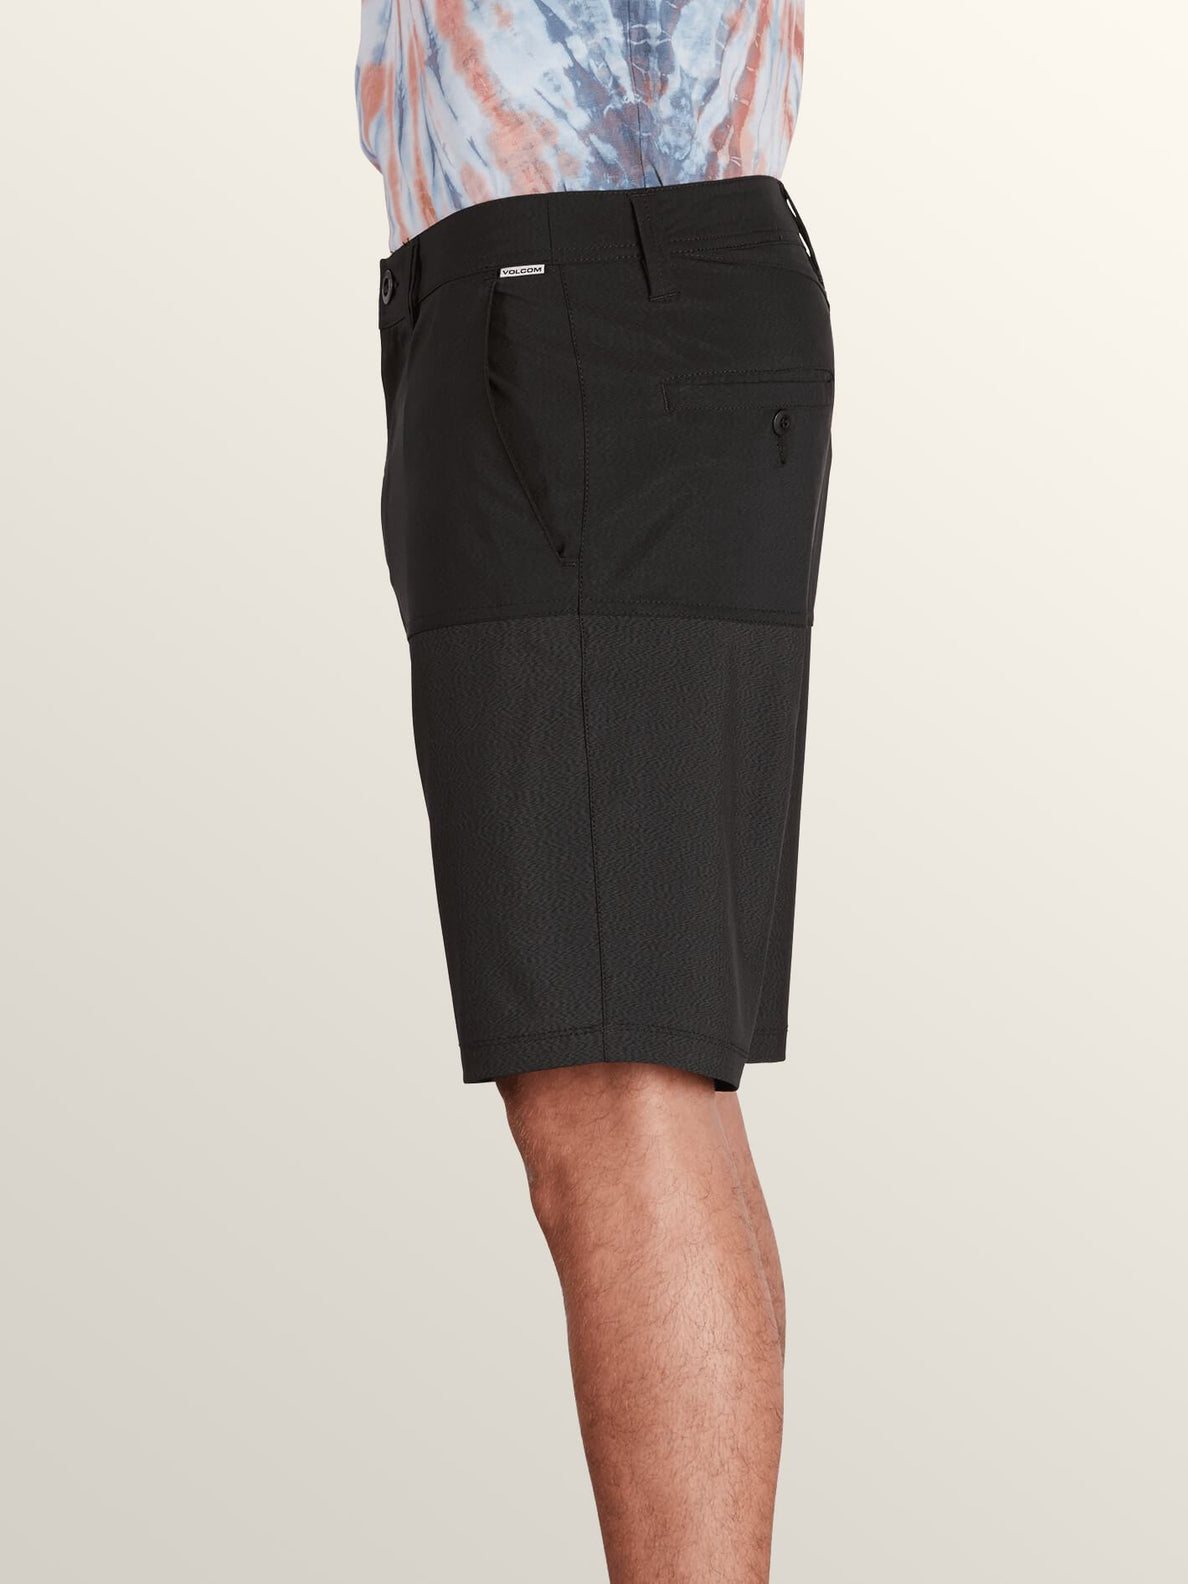 Surf 'N Turf Hybrid Block Hybrid Shorts In Black, Alternate View